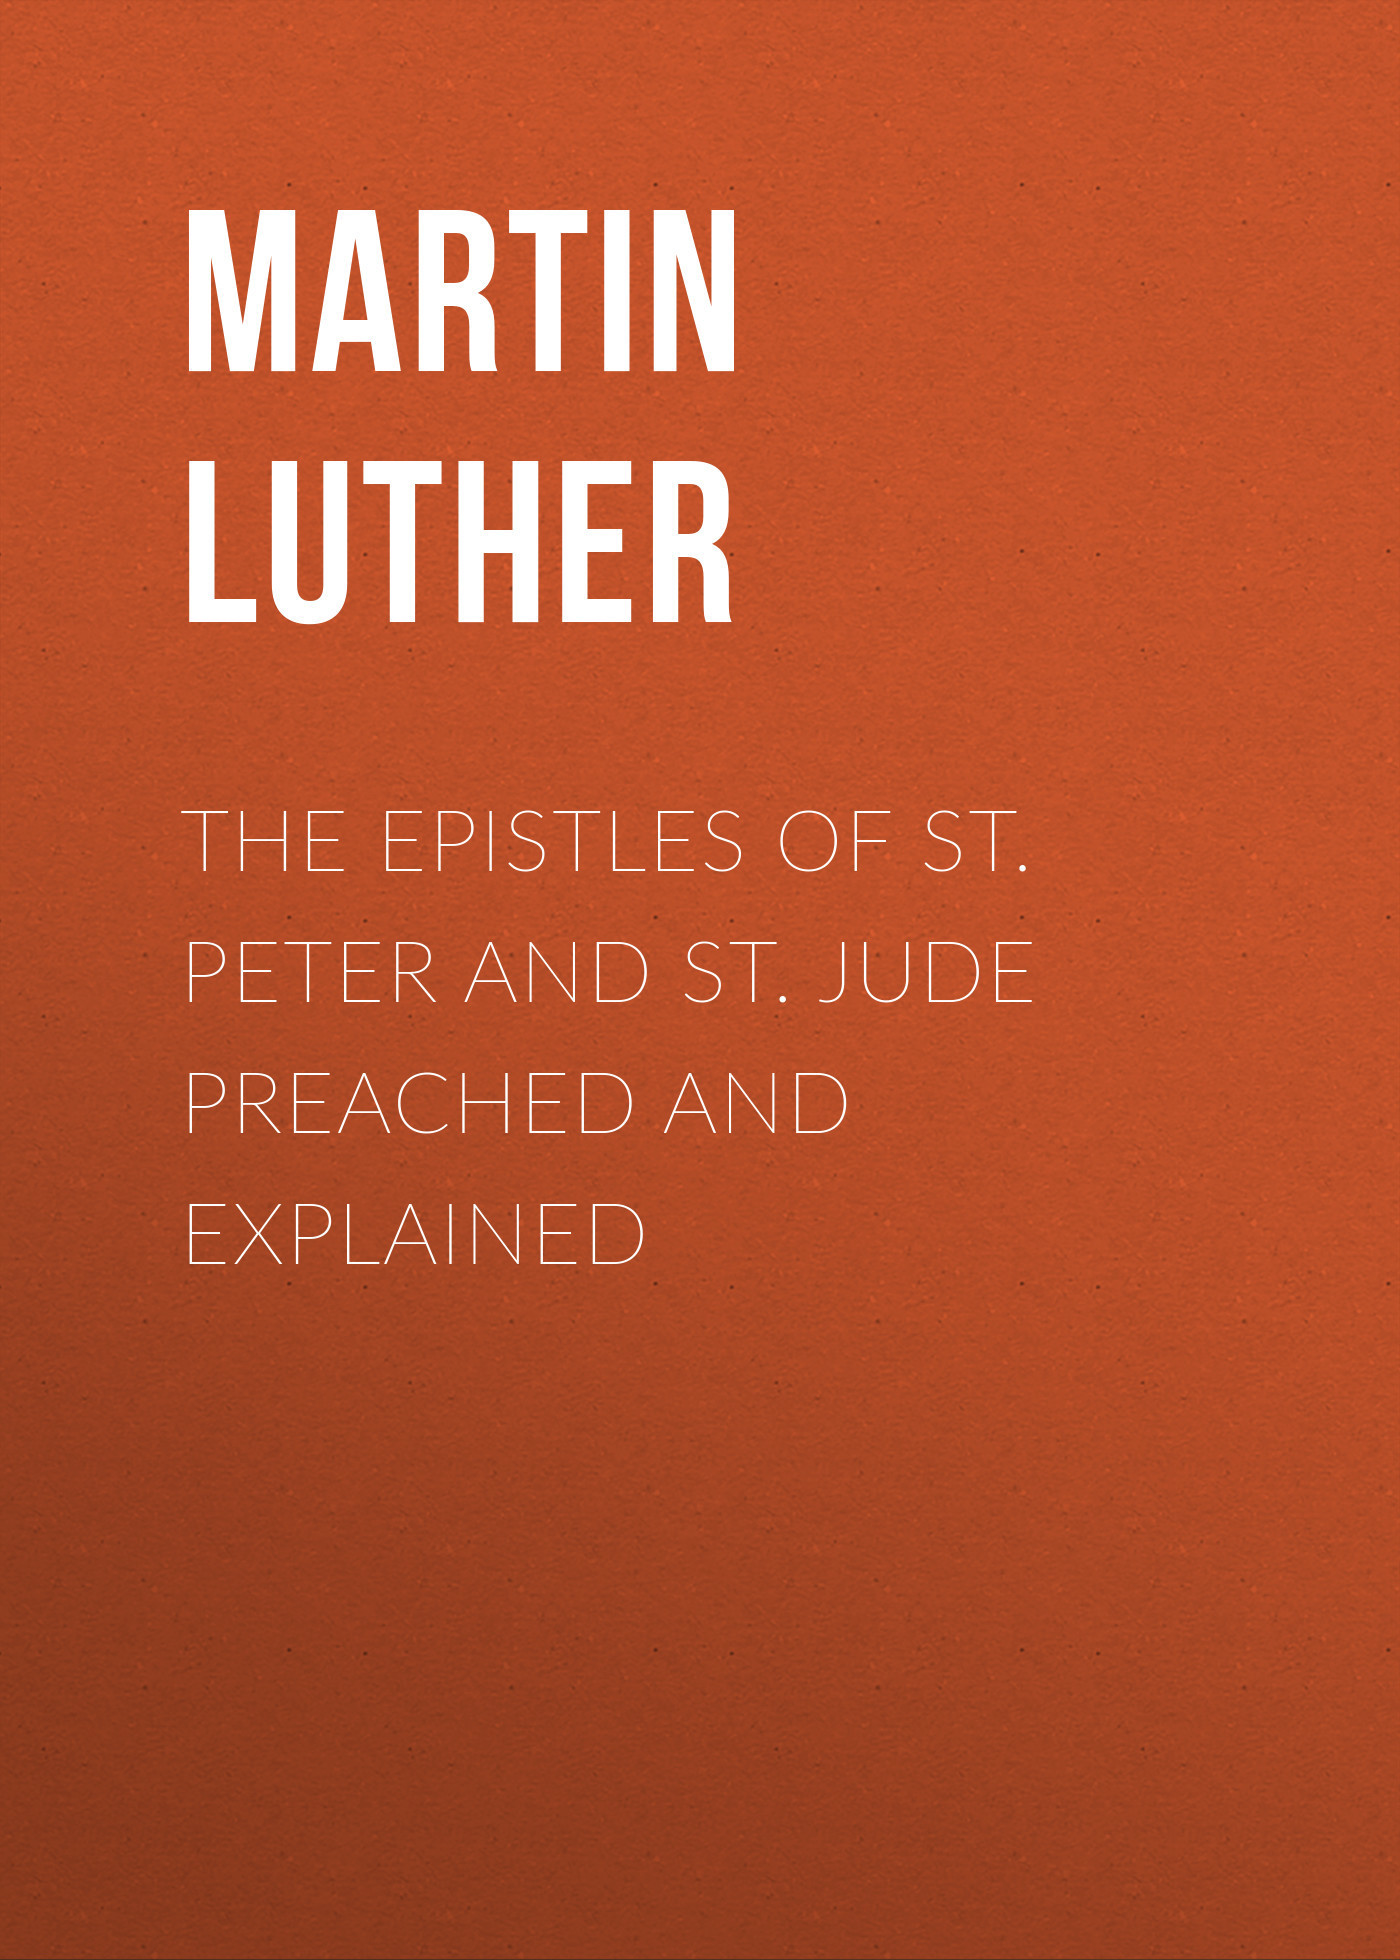 Martin Luther The Epistles of St. Peter and St. Jude Preached and Explained jude the obscure